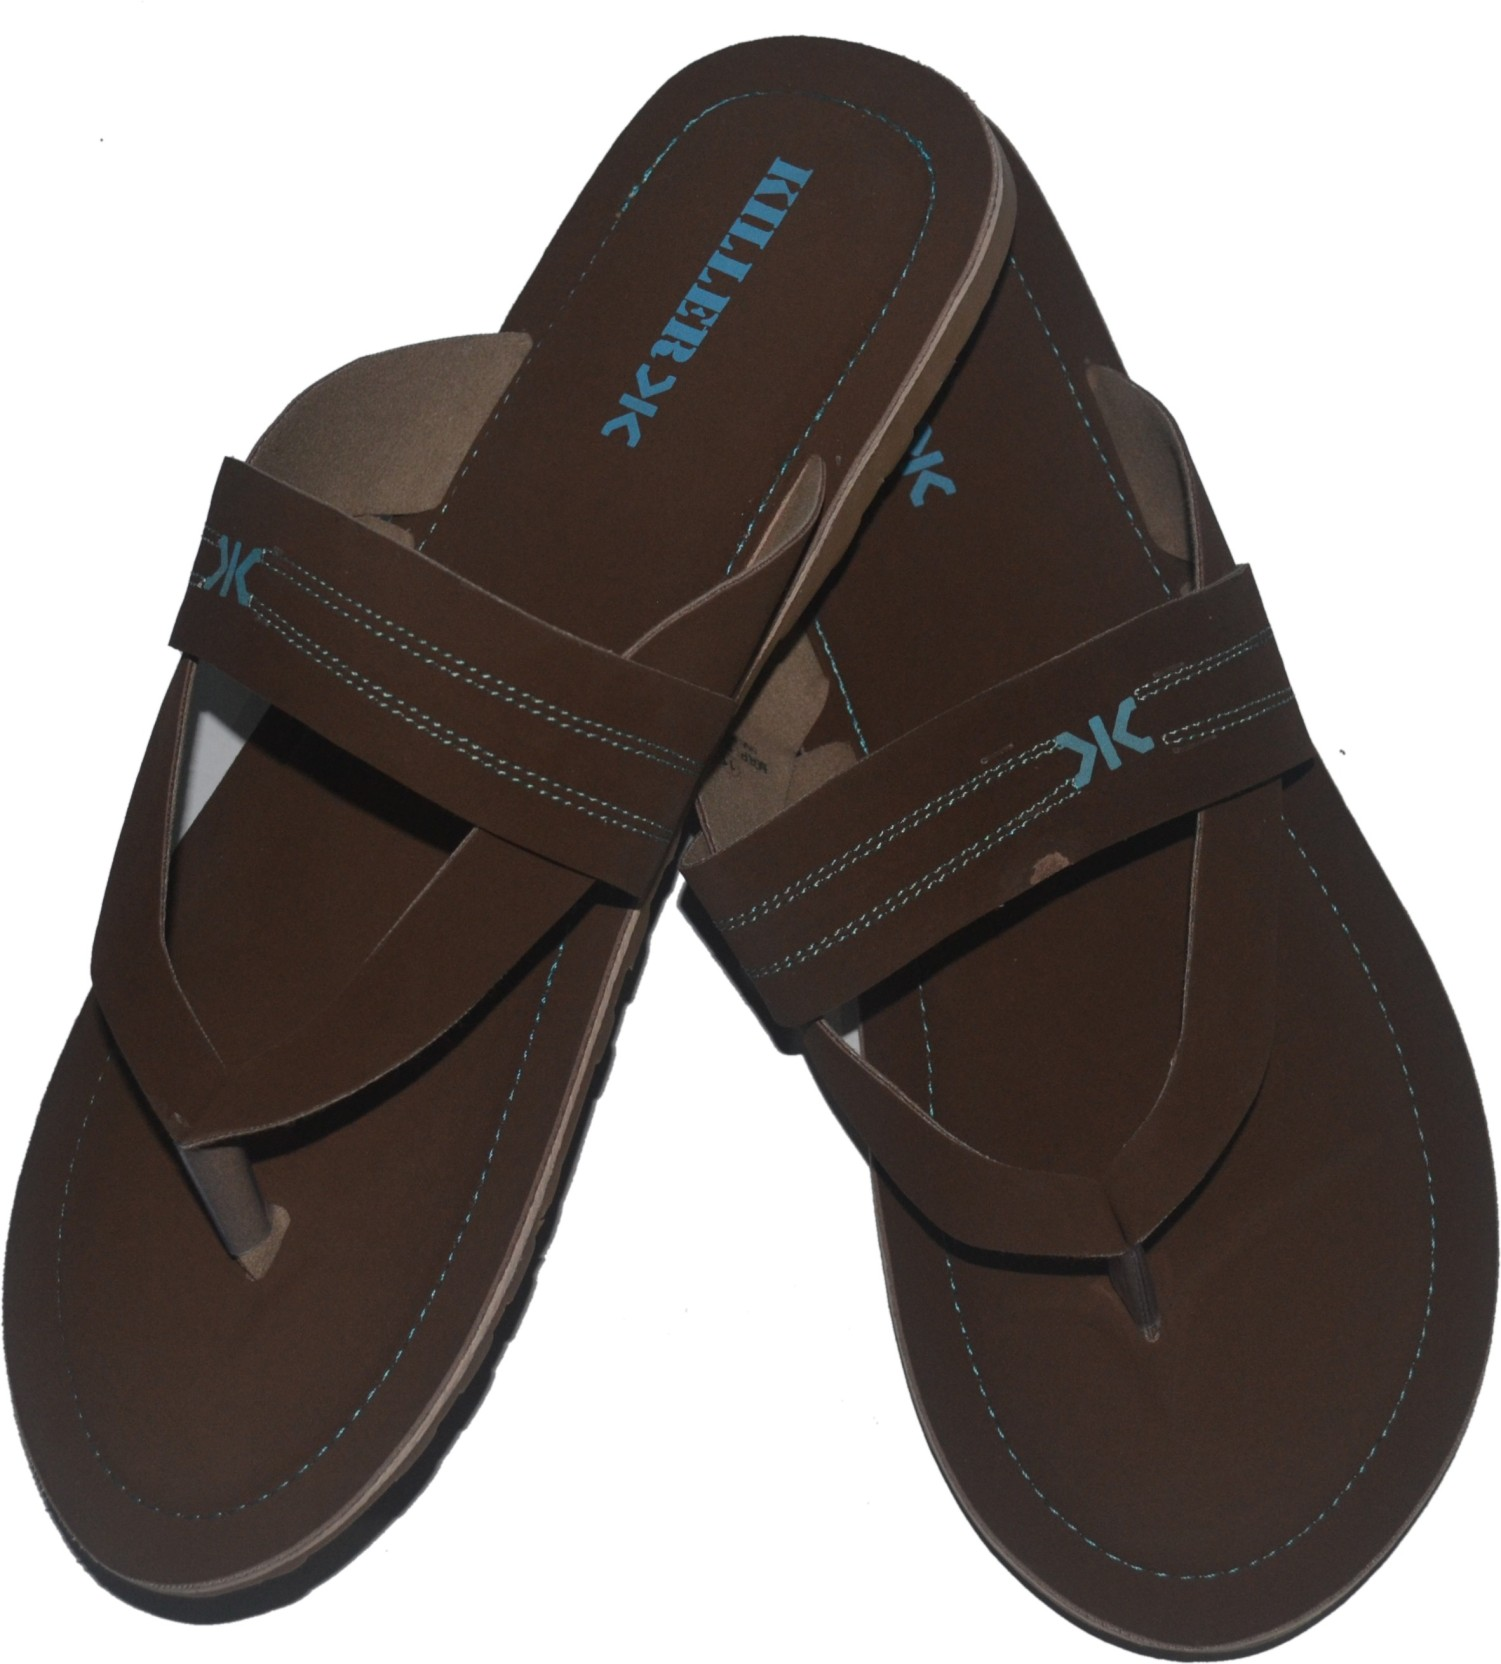 636f5fc409a69 Killer Flip Flops - Buy KLFPIL-2001 Dark Brown Color Killer Flip ...